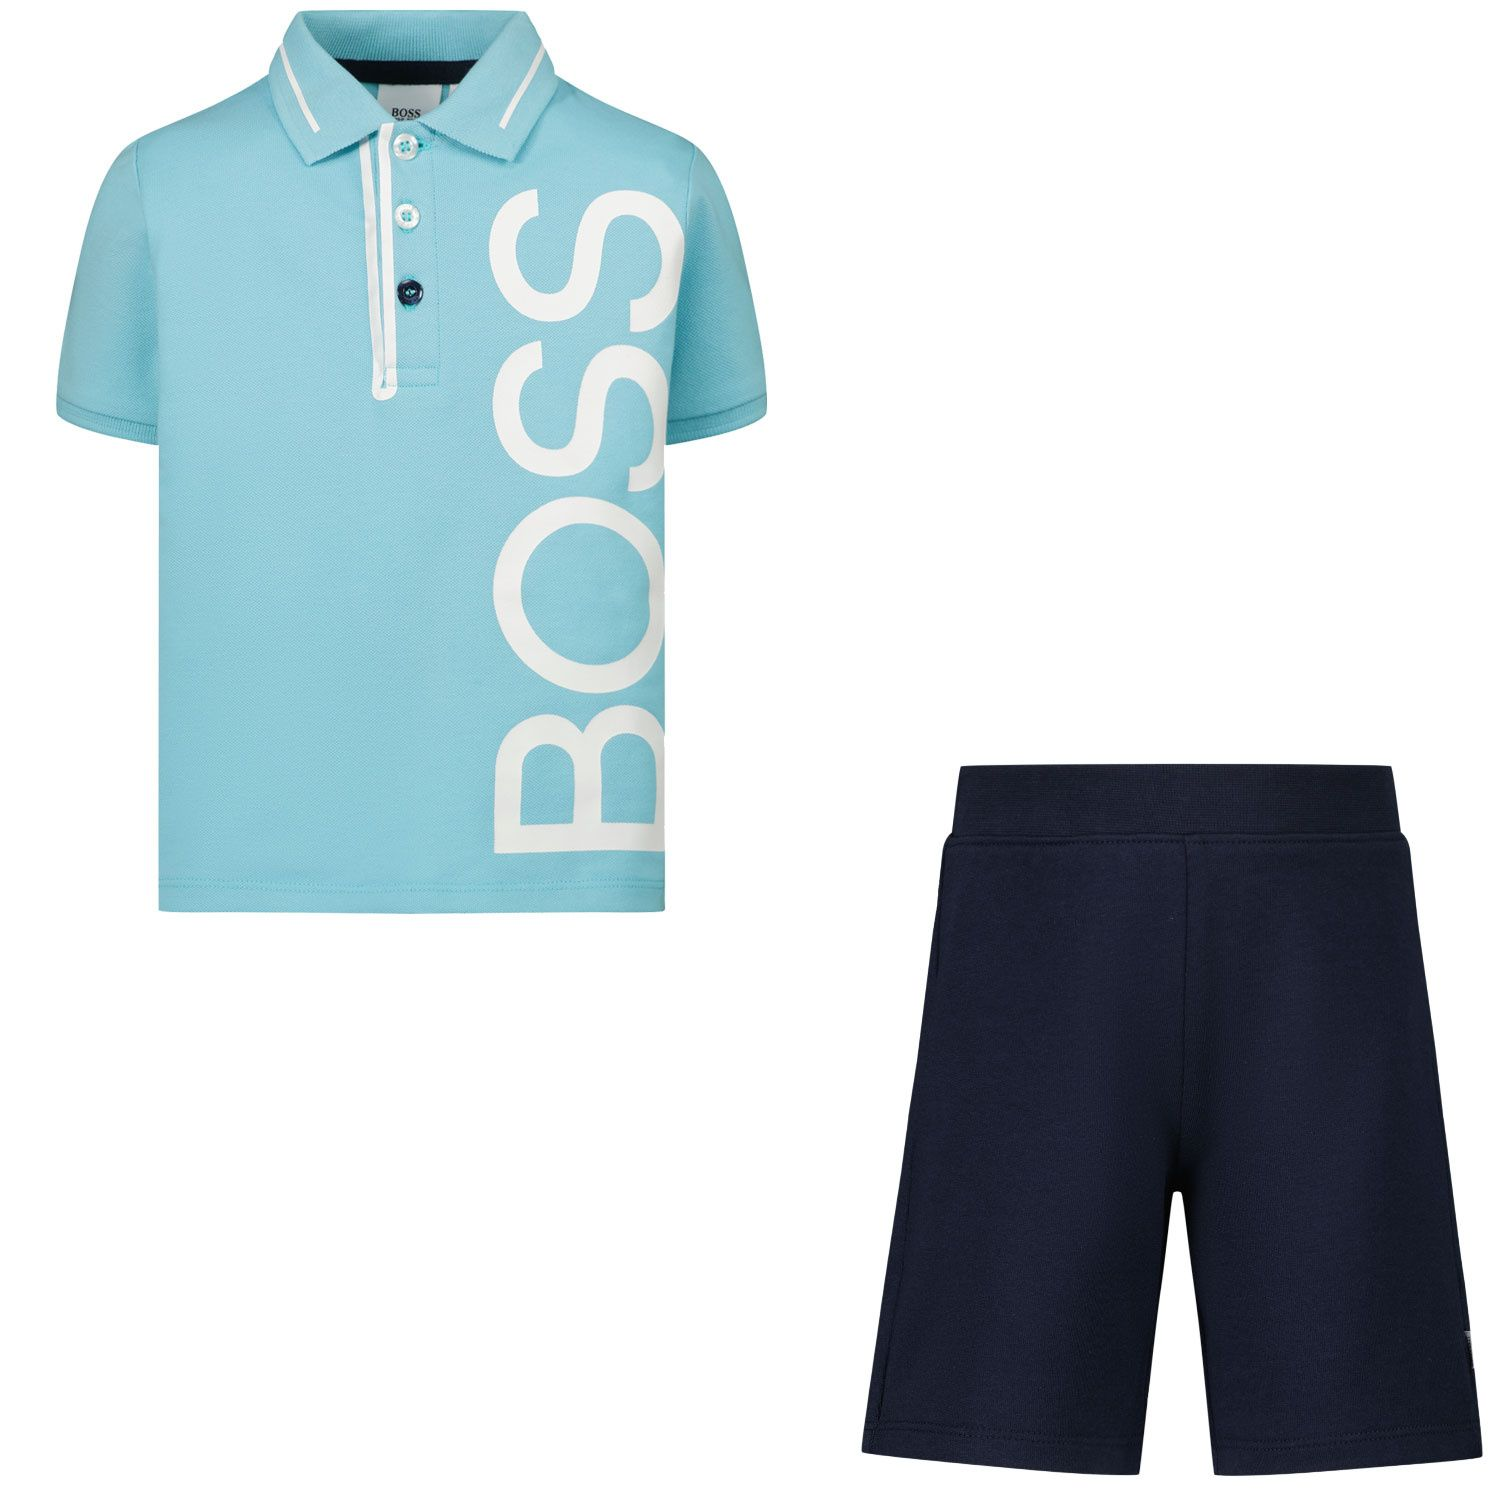 Picture of Boss J08050 baby set turquoise